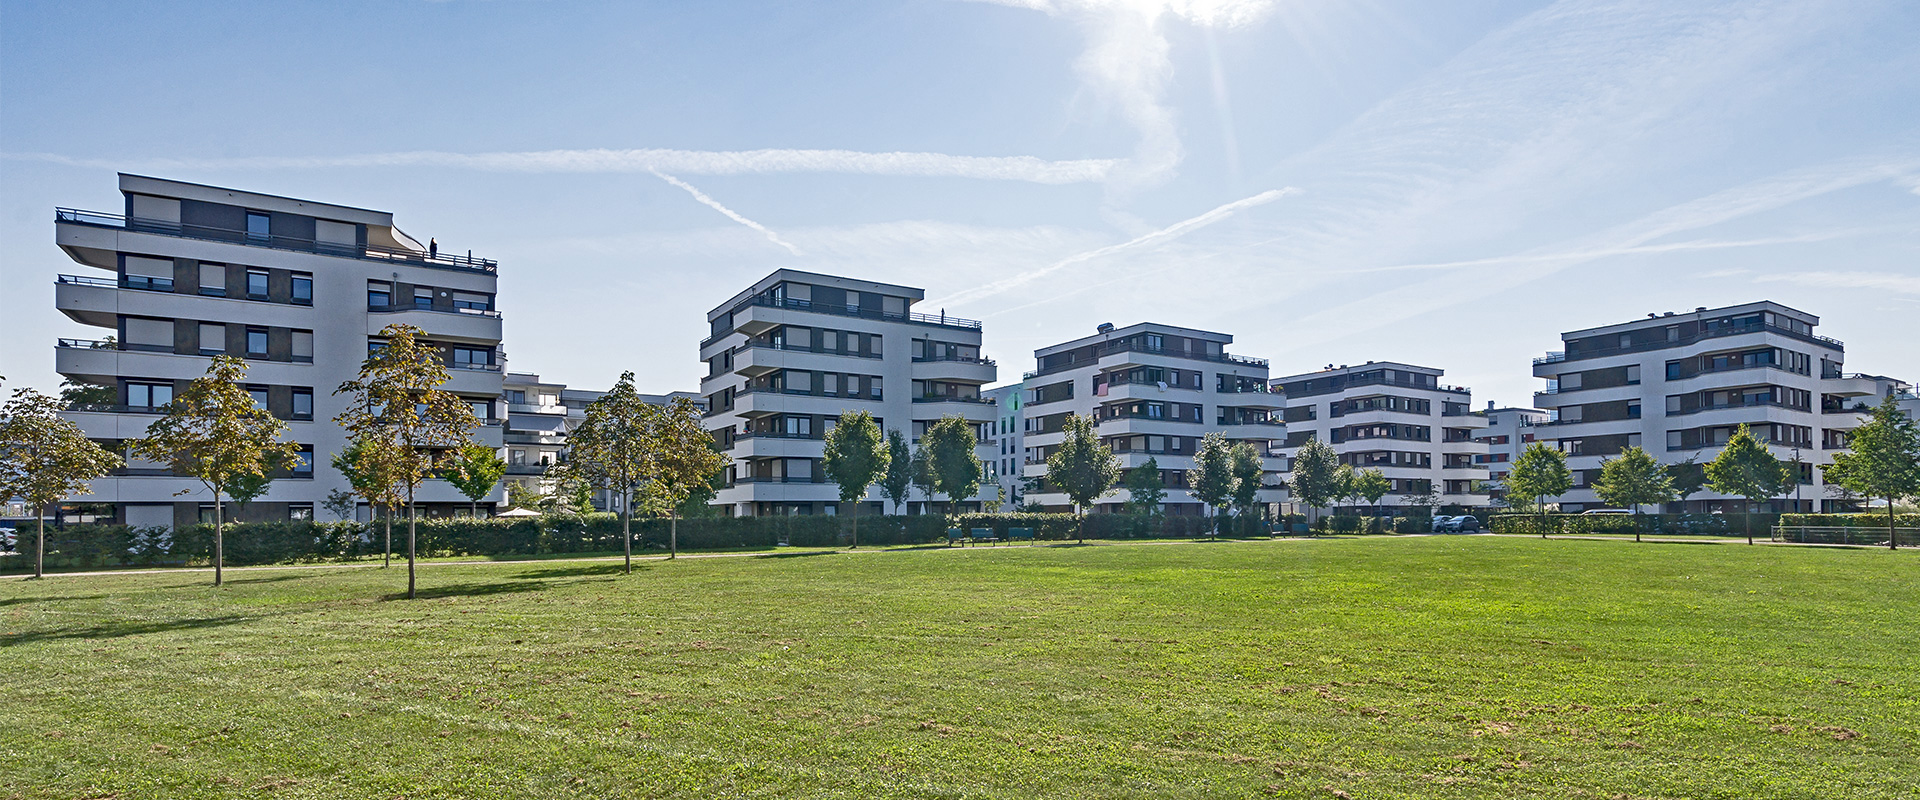 Parkside Leopold. Condominium in Munich Schwabing